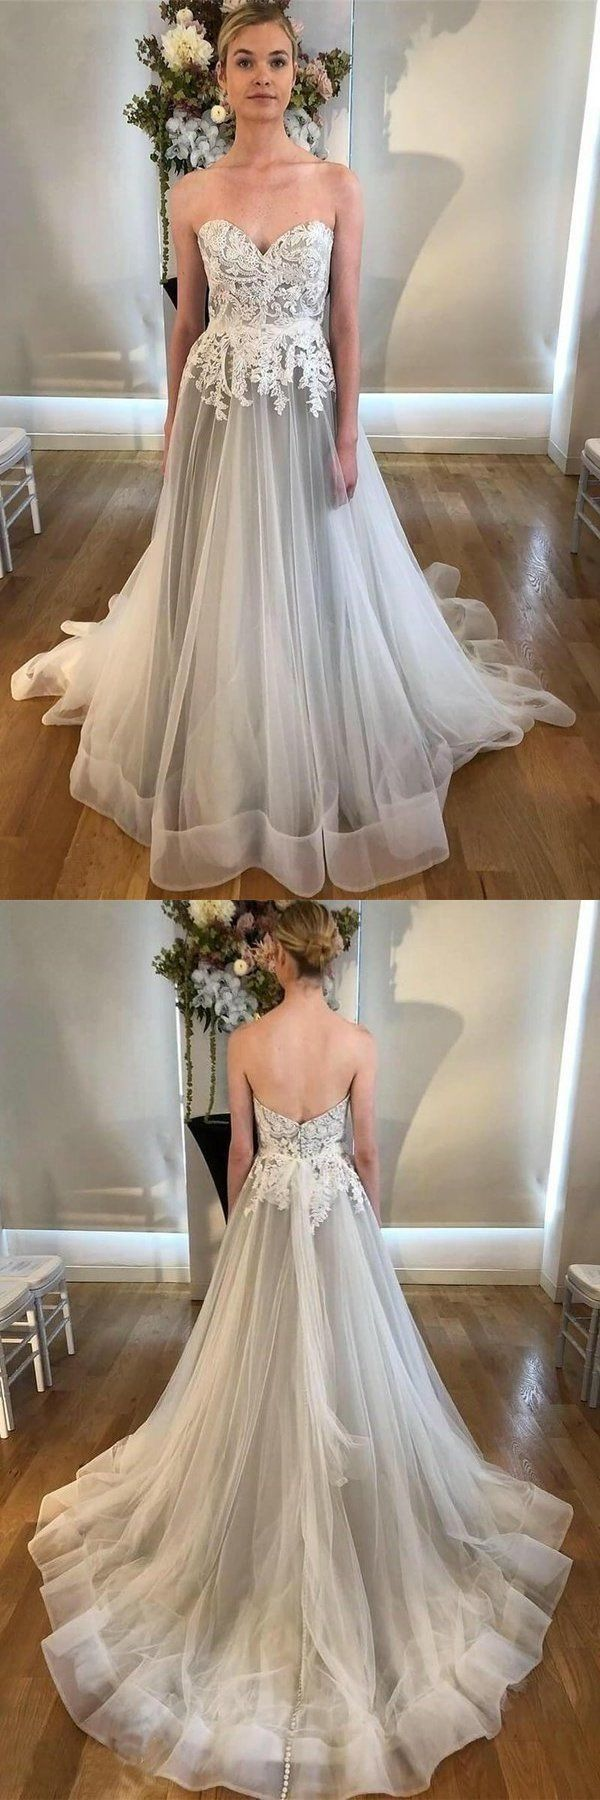 A Line Sweetheart Strapless Backless Silver Grey Tulle Wedding Dresses With Sweep Train Grey Wedding Dress Strapless Wedding Dress Sweetheart Chic Wedding Dresses [ 1800 x 600 Pixel ]